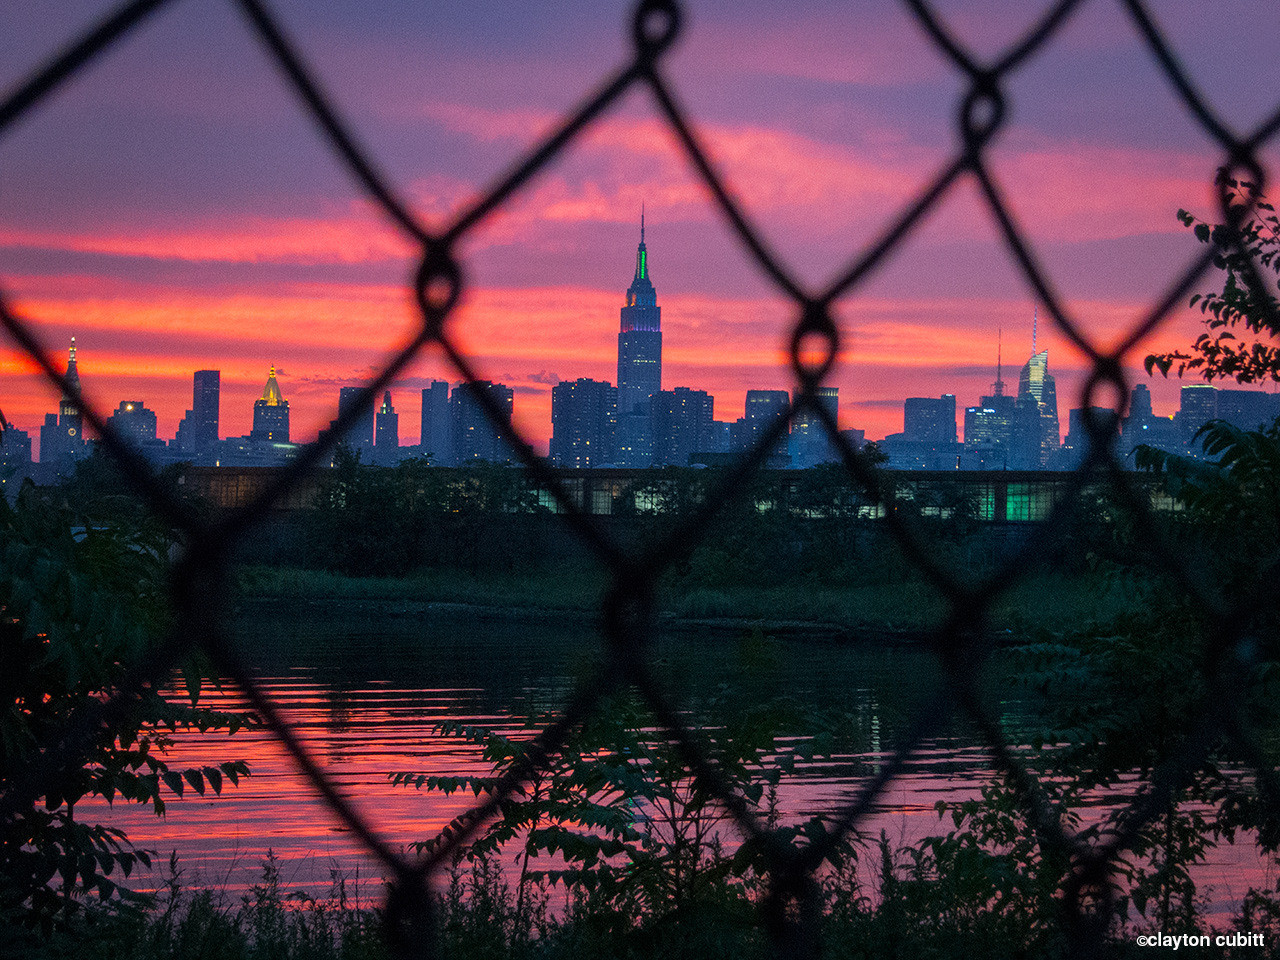 Sunset and Empire State Building through chain link, Brooklyn  (0672)